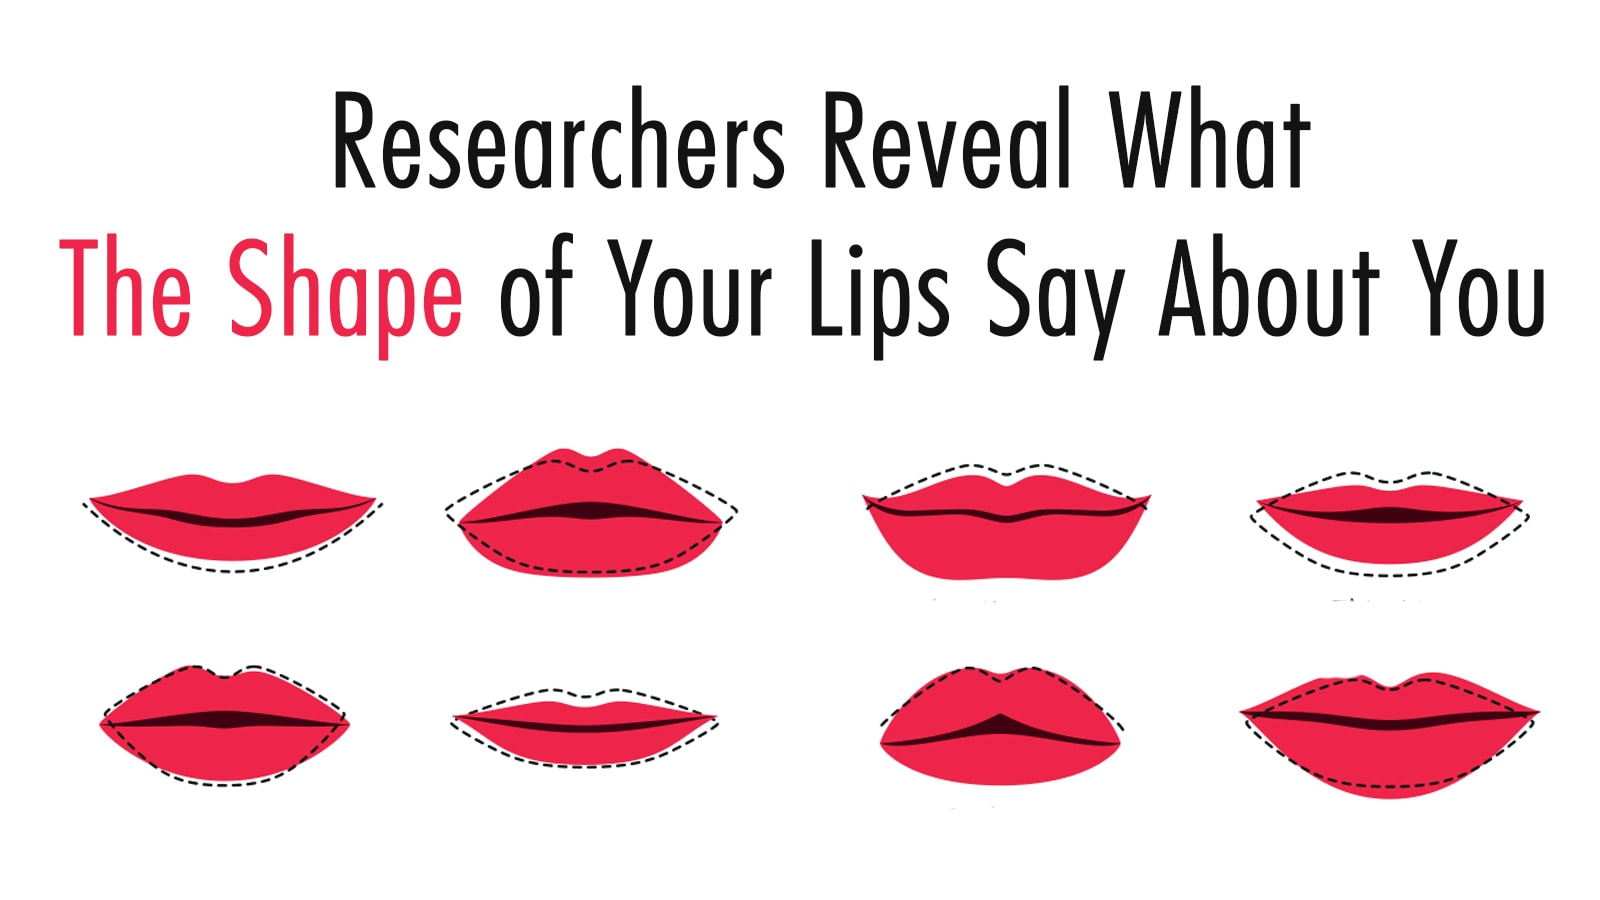 Researchers Reveal What The Shape of Your Lips Say About You